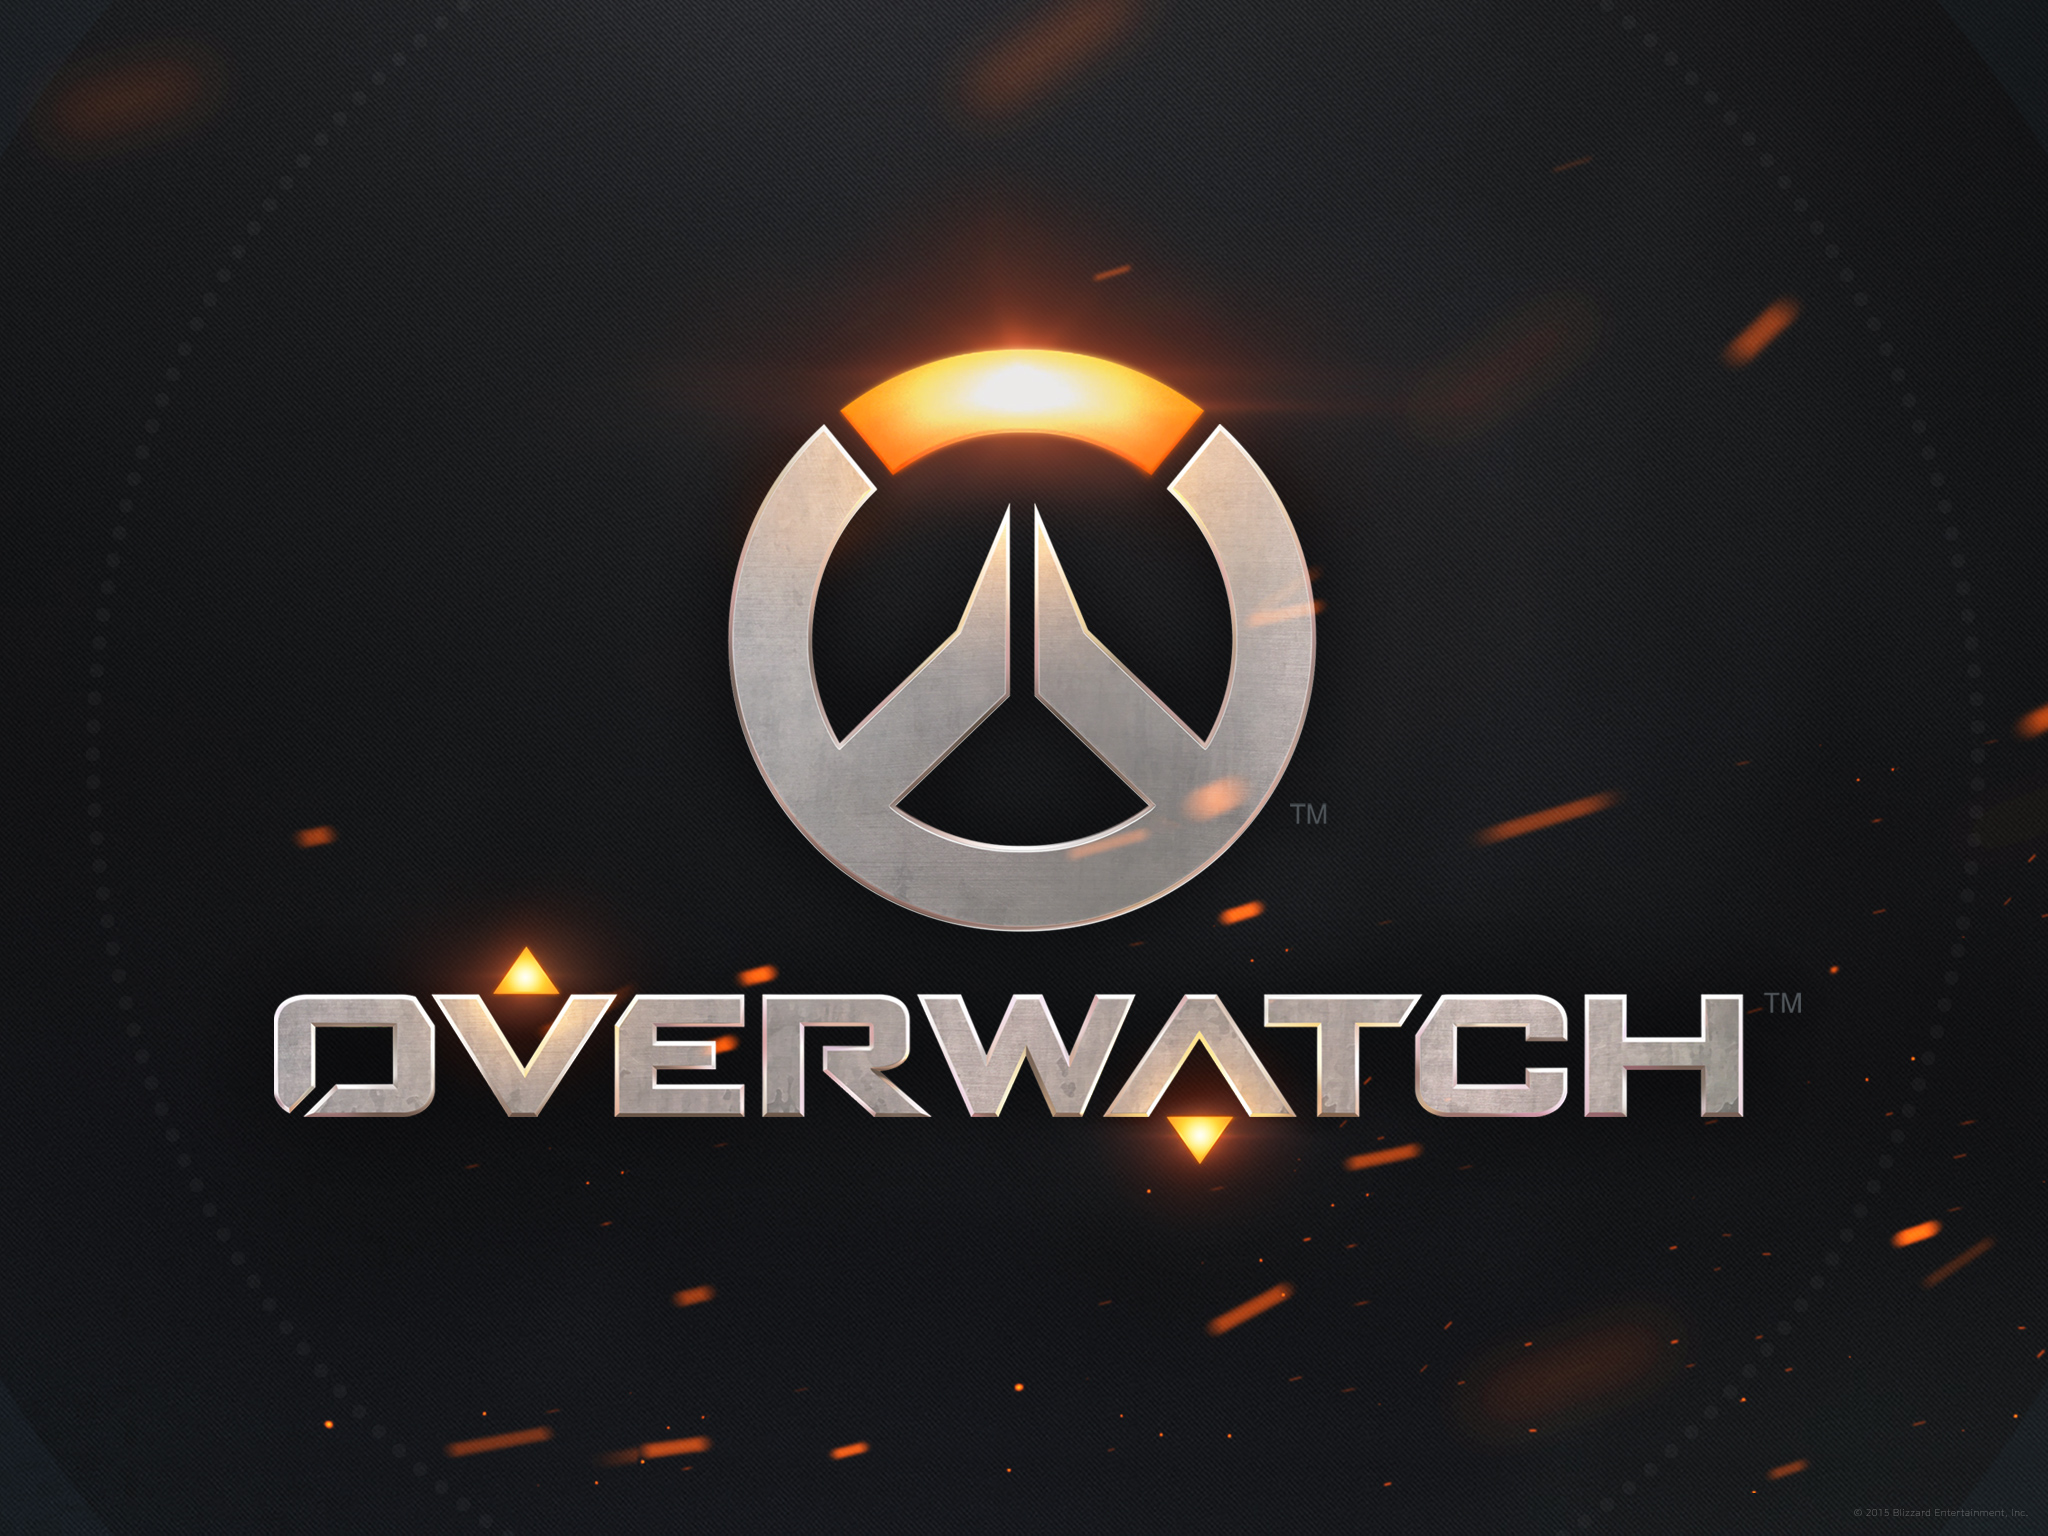 Overwatch Free Weekend 9th September